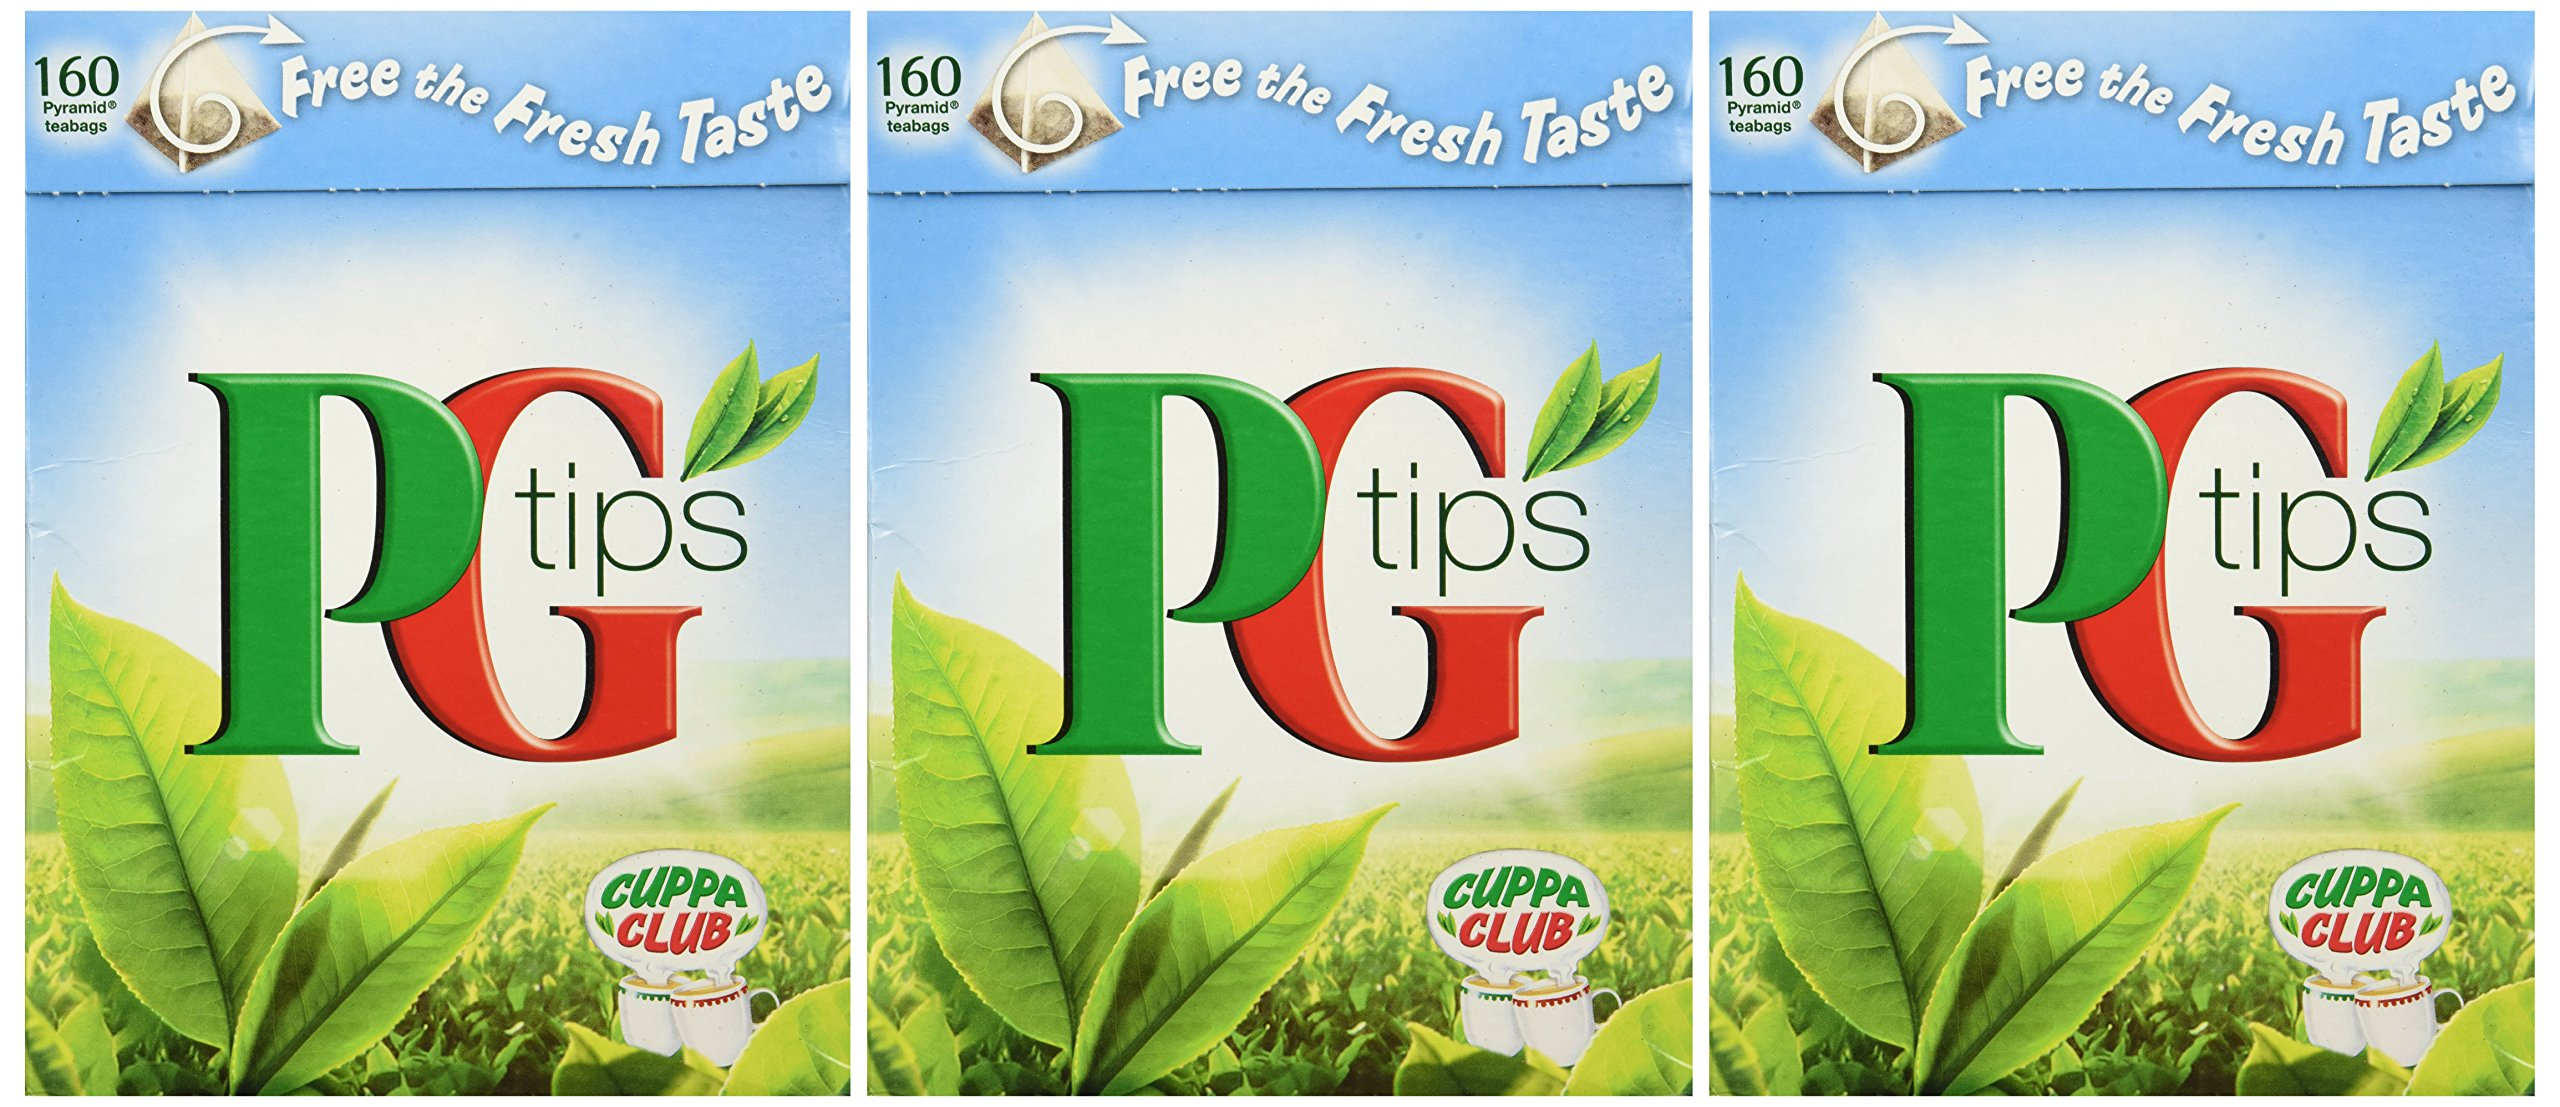 PG Tips 160 Bags 3 Pack (480 Bags Total), Blue Box